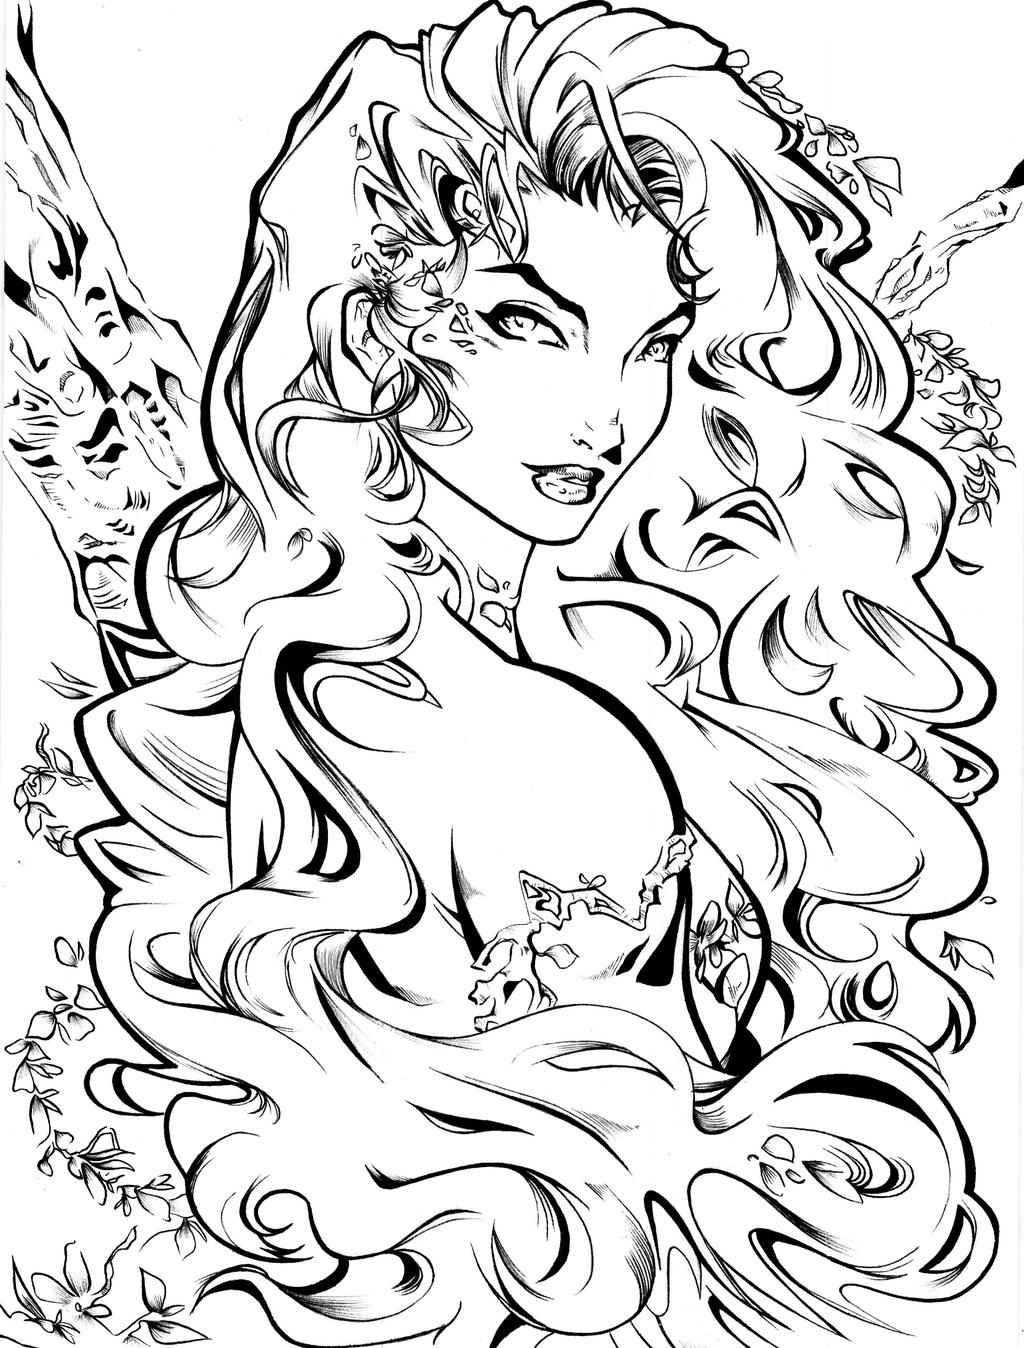 poison ivy colouring pages poison ivy by jollyjack on deviantart colouring pages ivy poison